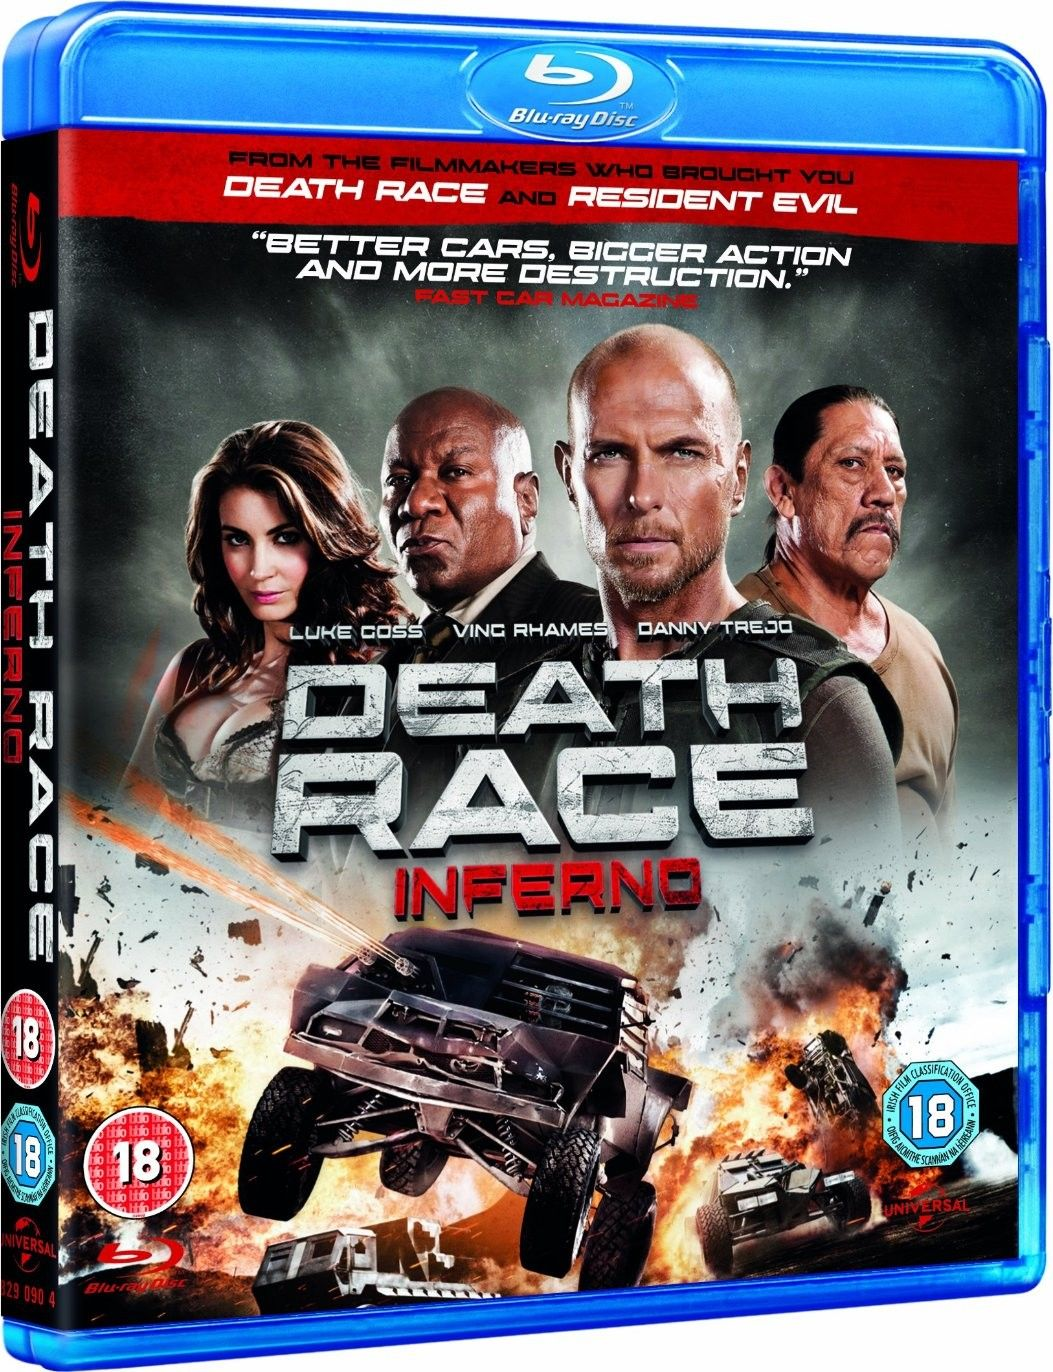 DEATH RACE 3: INFERNO Blu-ray Review | Collider